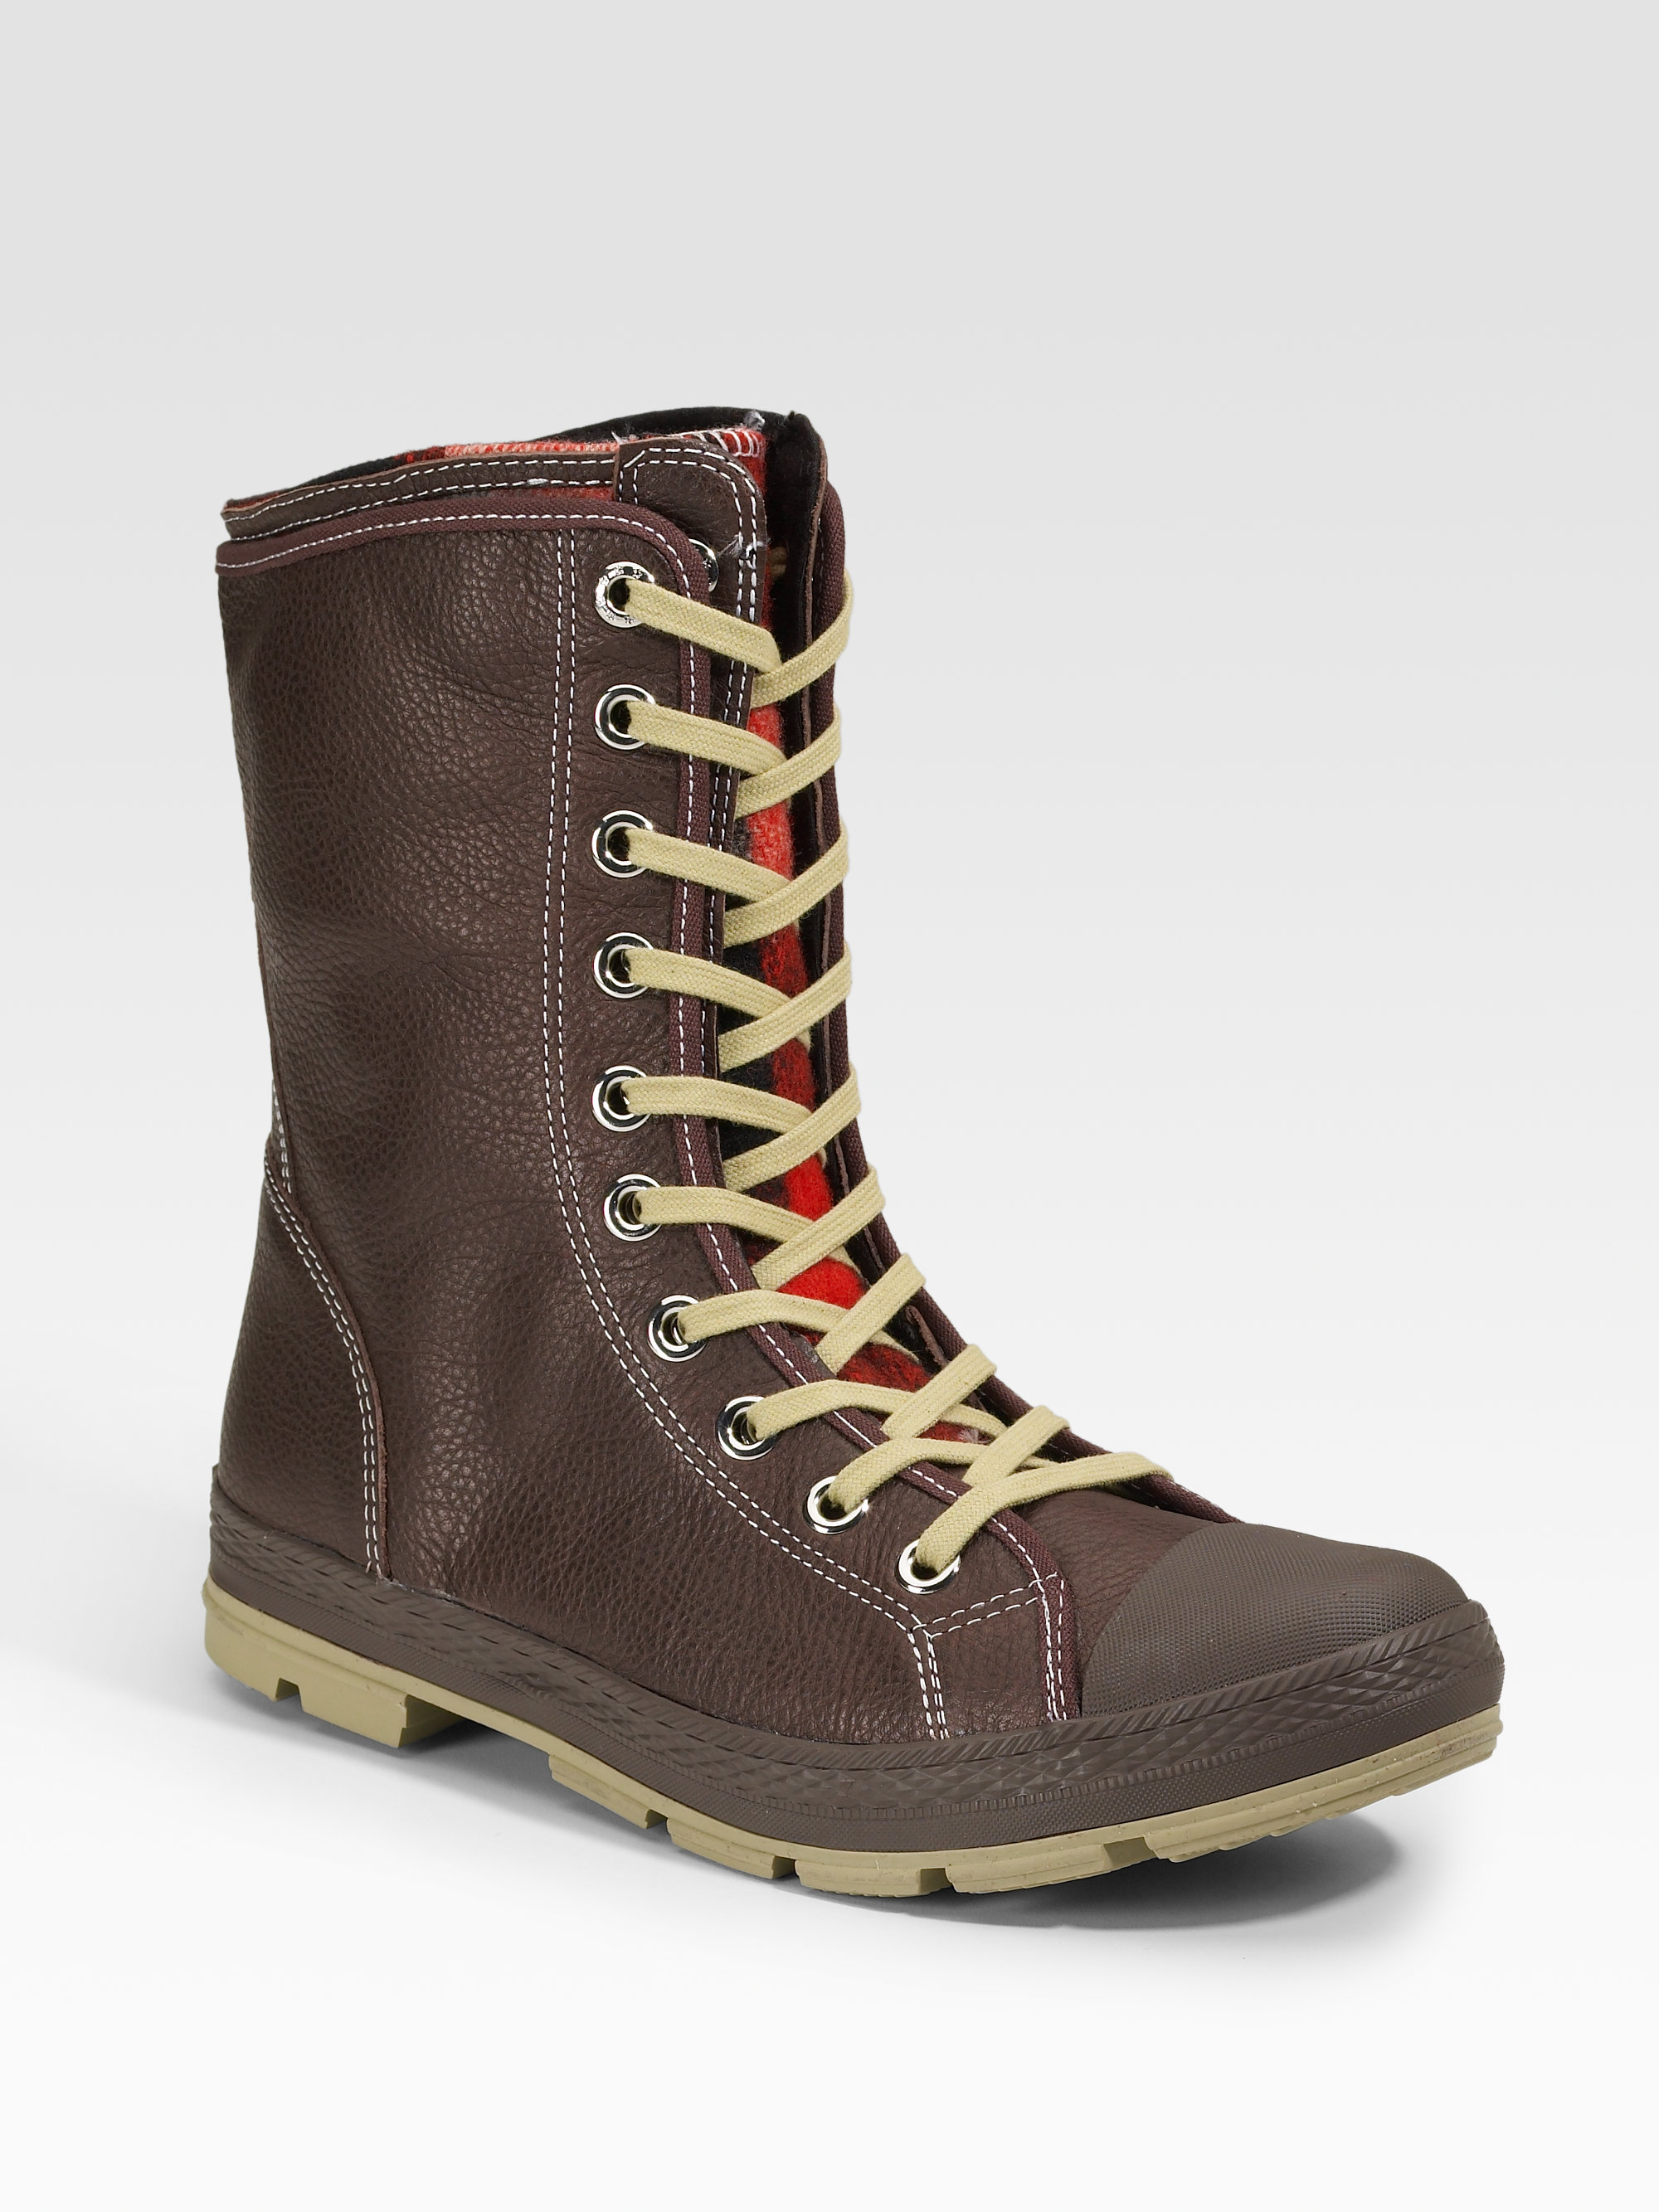 6eb03638d3a15b Lyst - Converse Chuck Taylor Woolrich Outsider Boots extra-high in ...